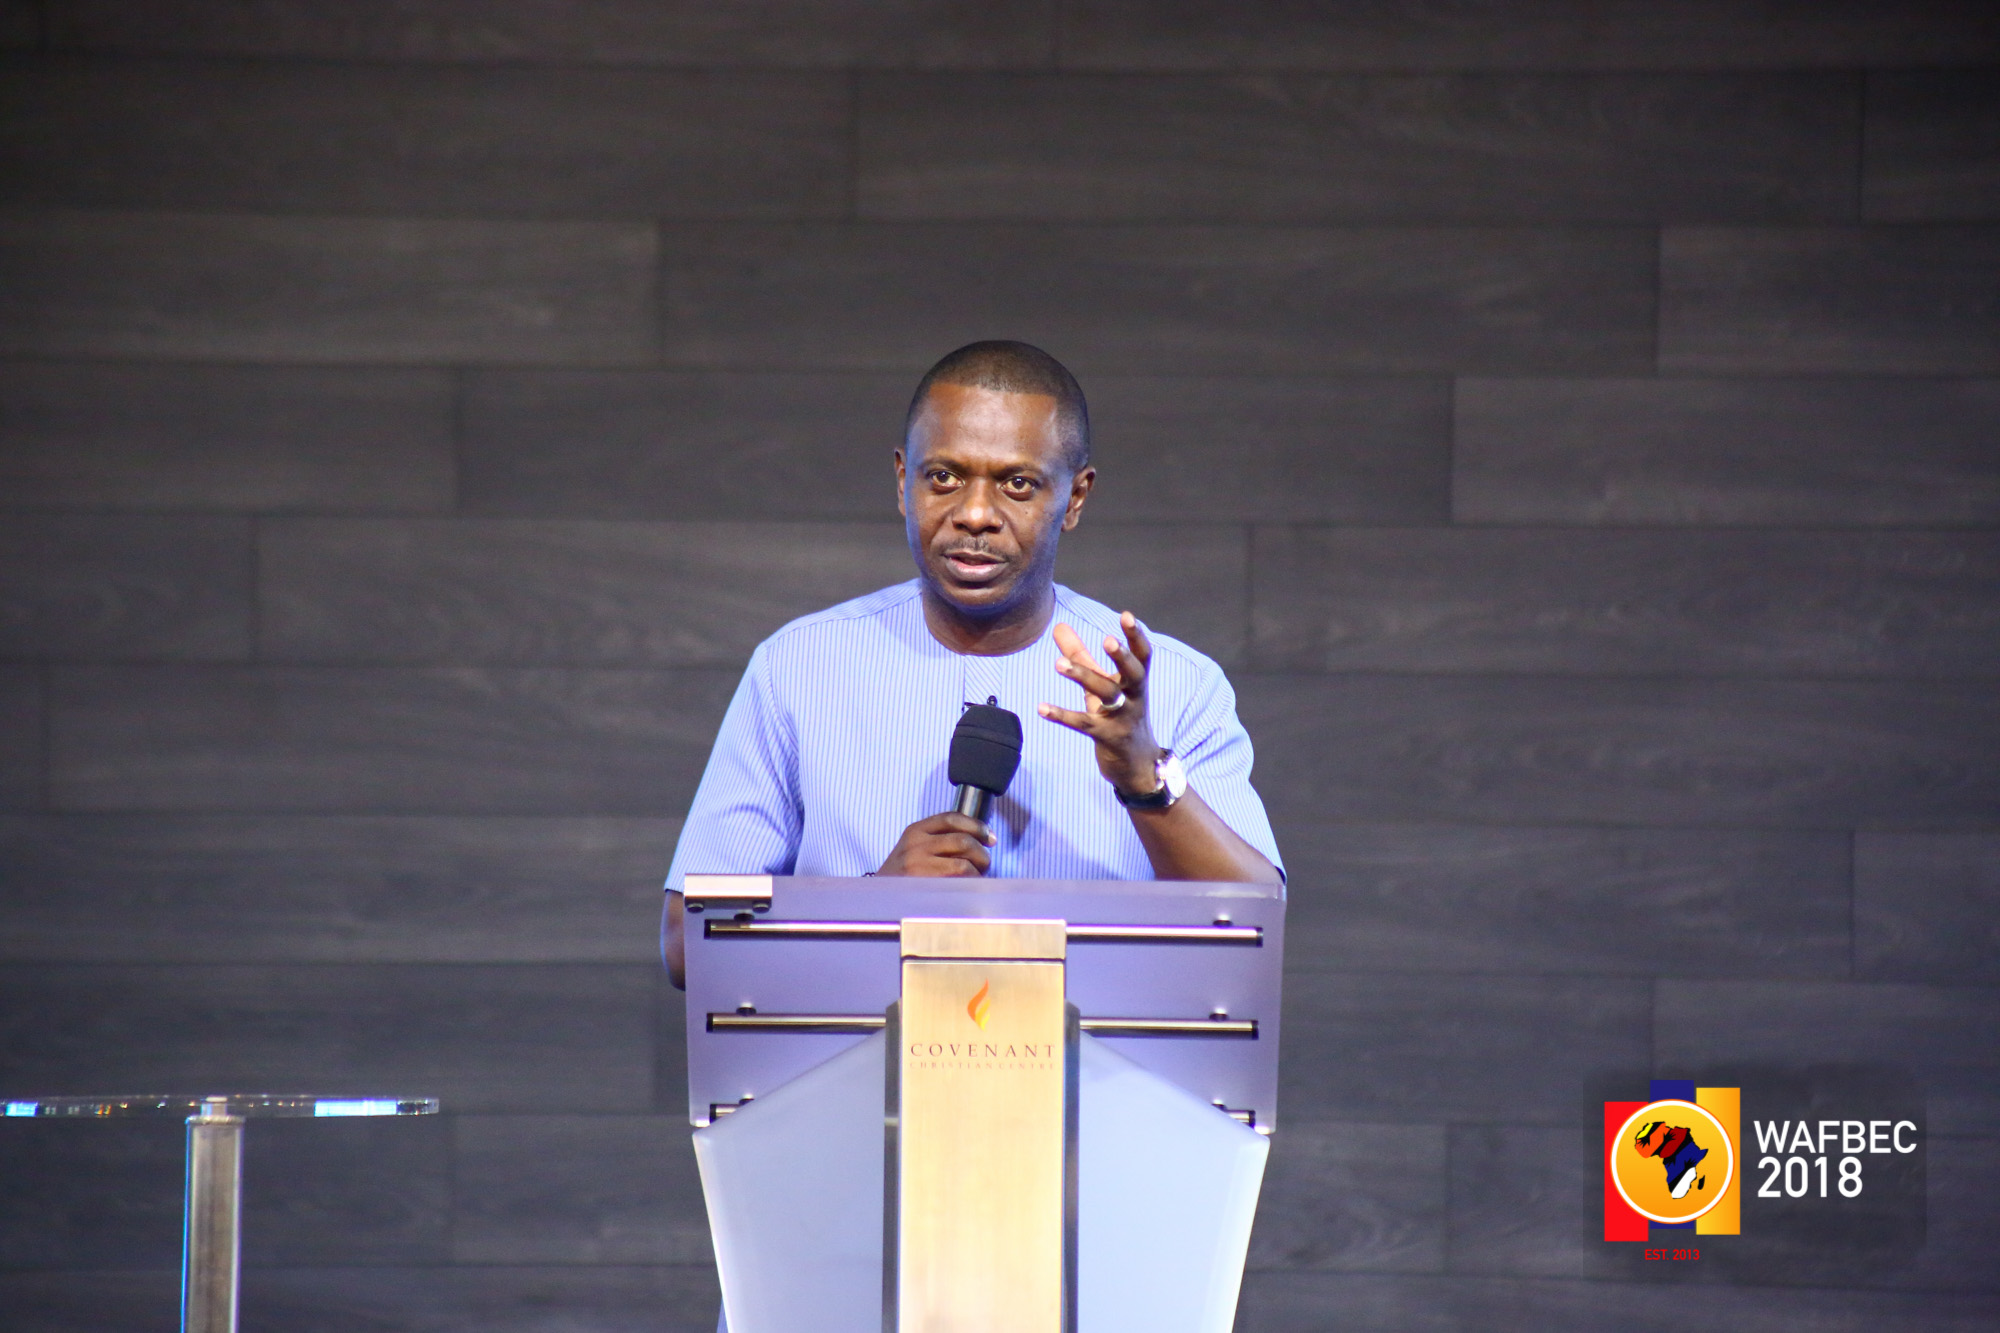 WAFBEC 2018 – DAY 3 (Morning Session 2) with PASTOR POJU OYEMADE